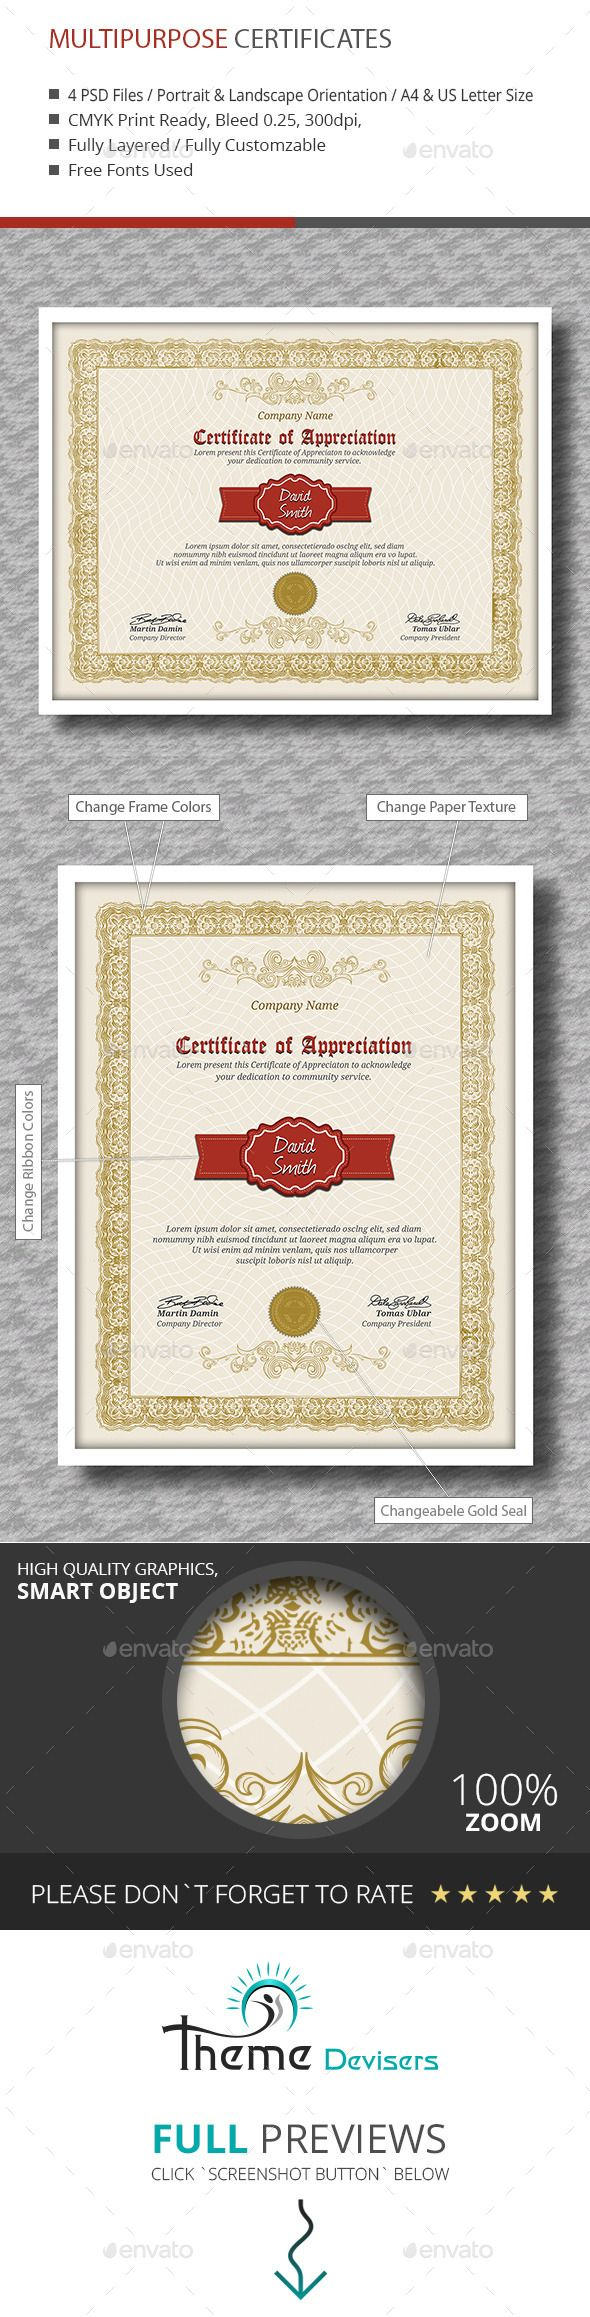 Certificate certificate templates certificate design and print multipurpose certificates template psd download here httpgraphicriver 1betcityfo Choice Image